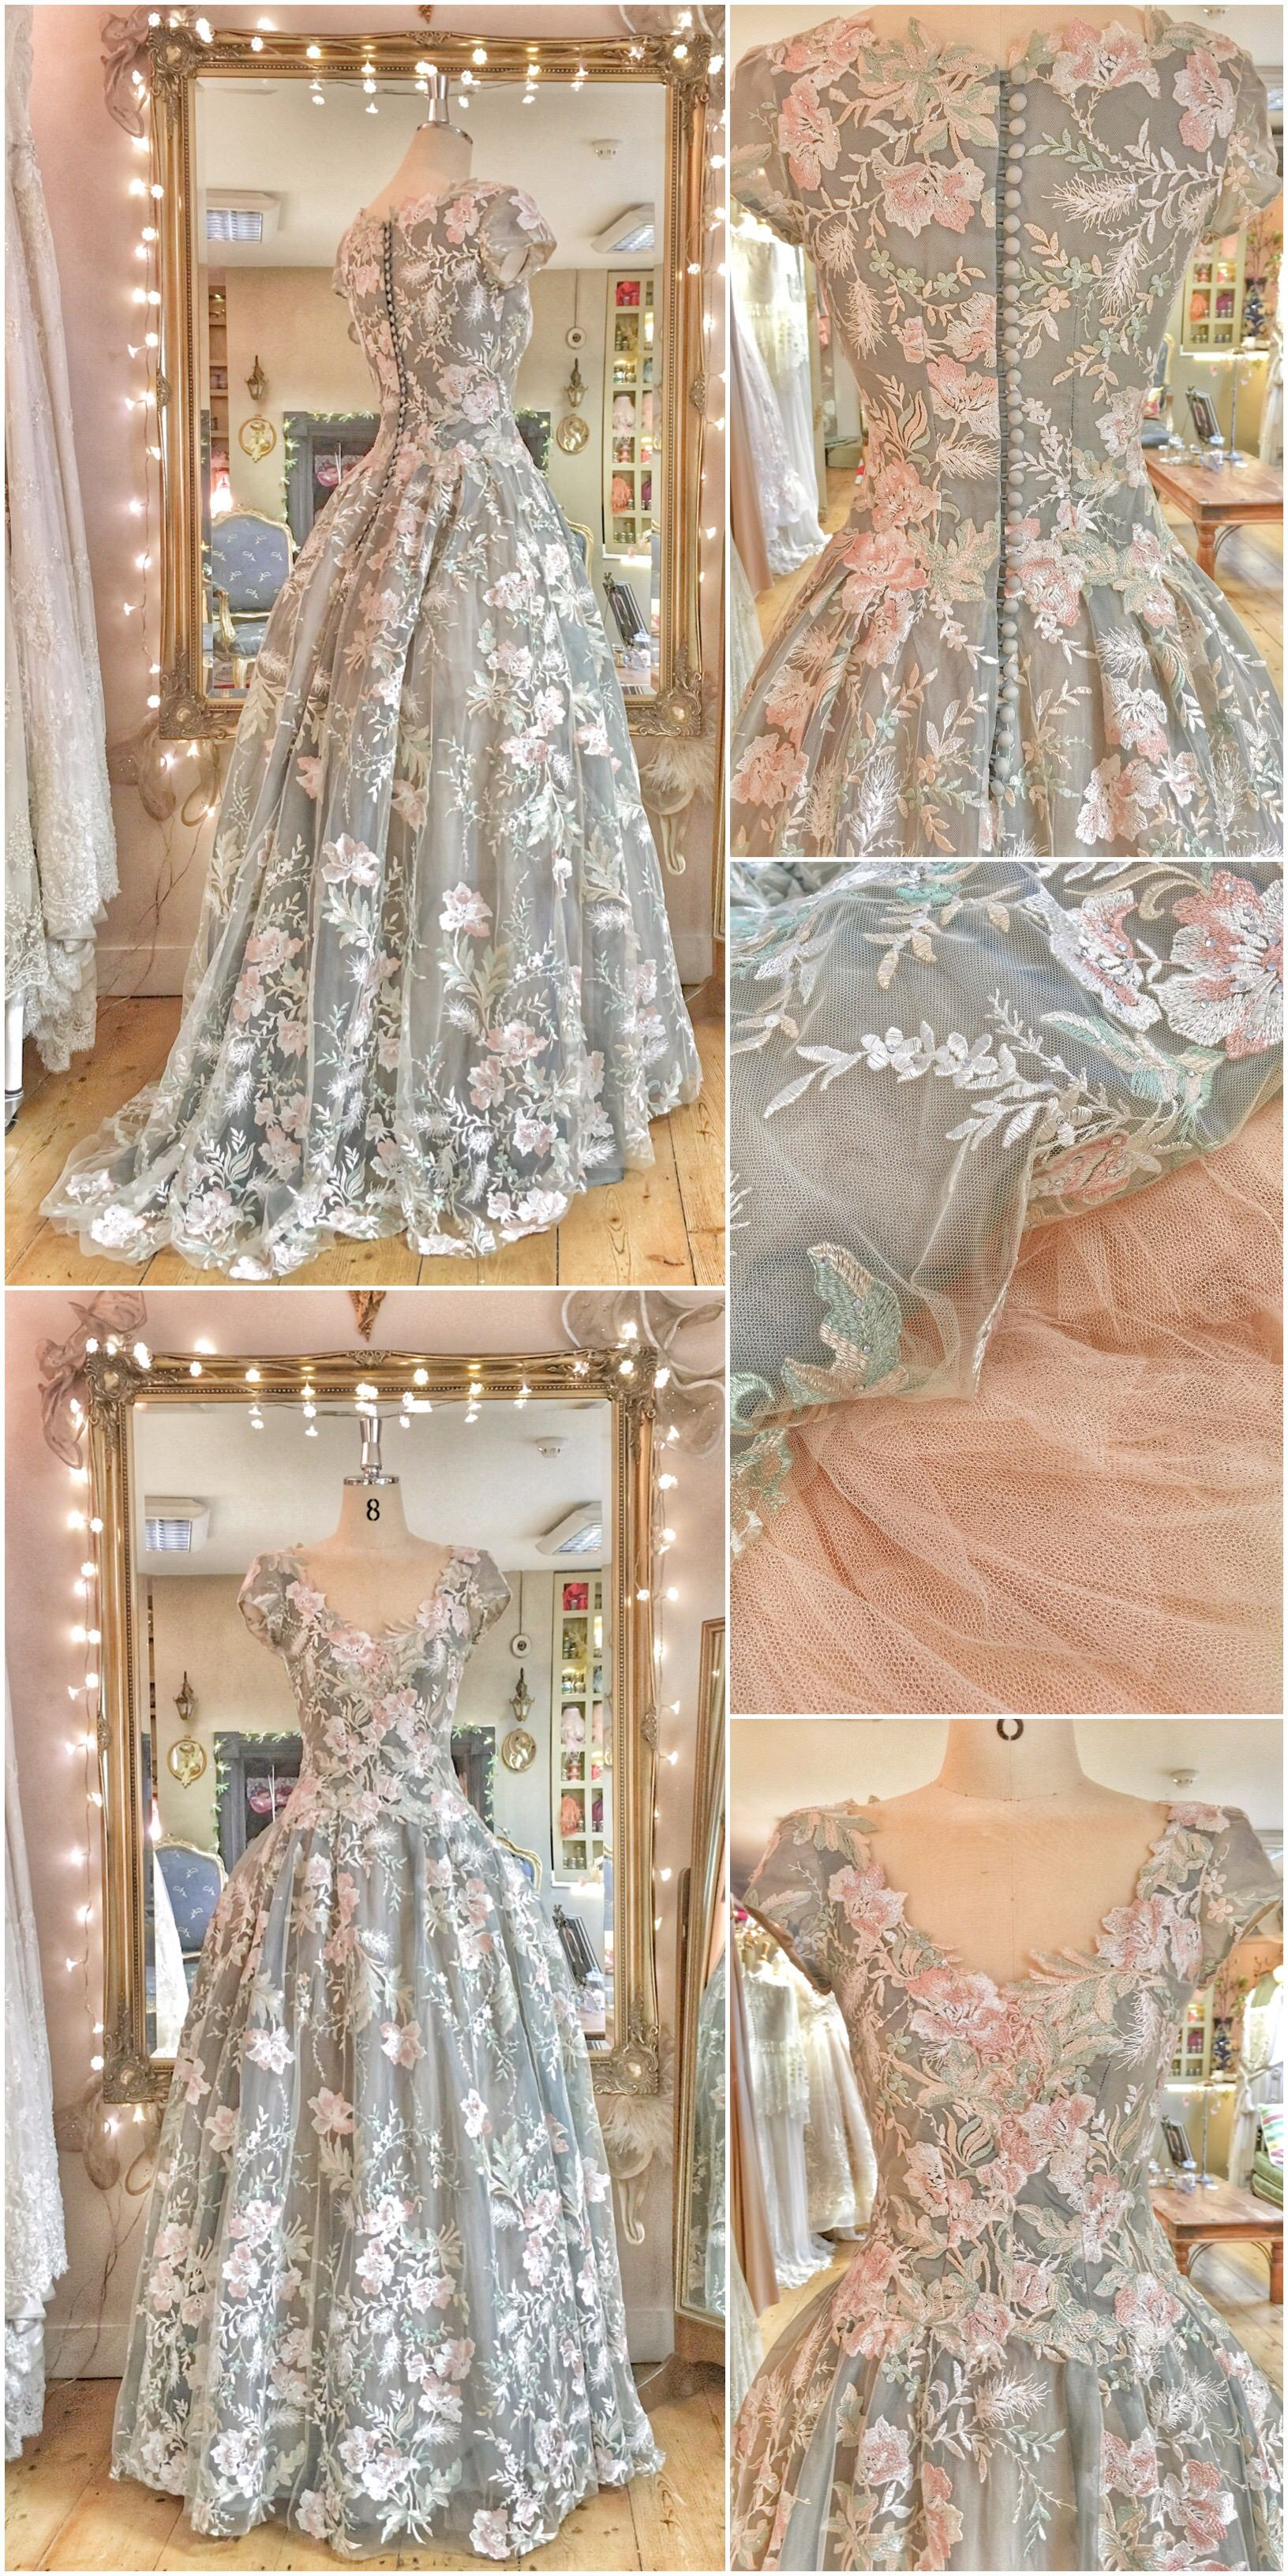 de9a96da92c38 Floral embroidered tulle and silk ballgown wedding dress by Joanne Fleming  Design